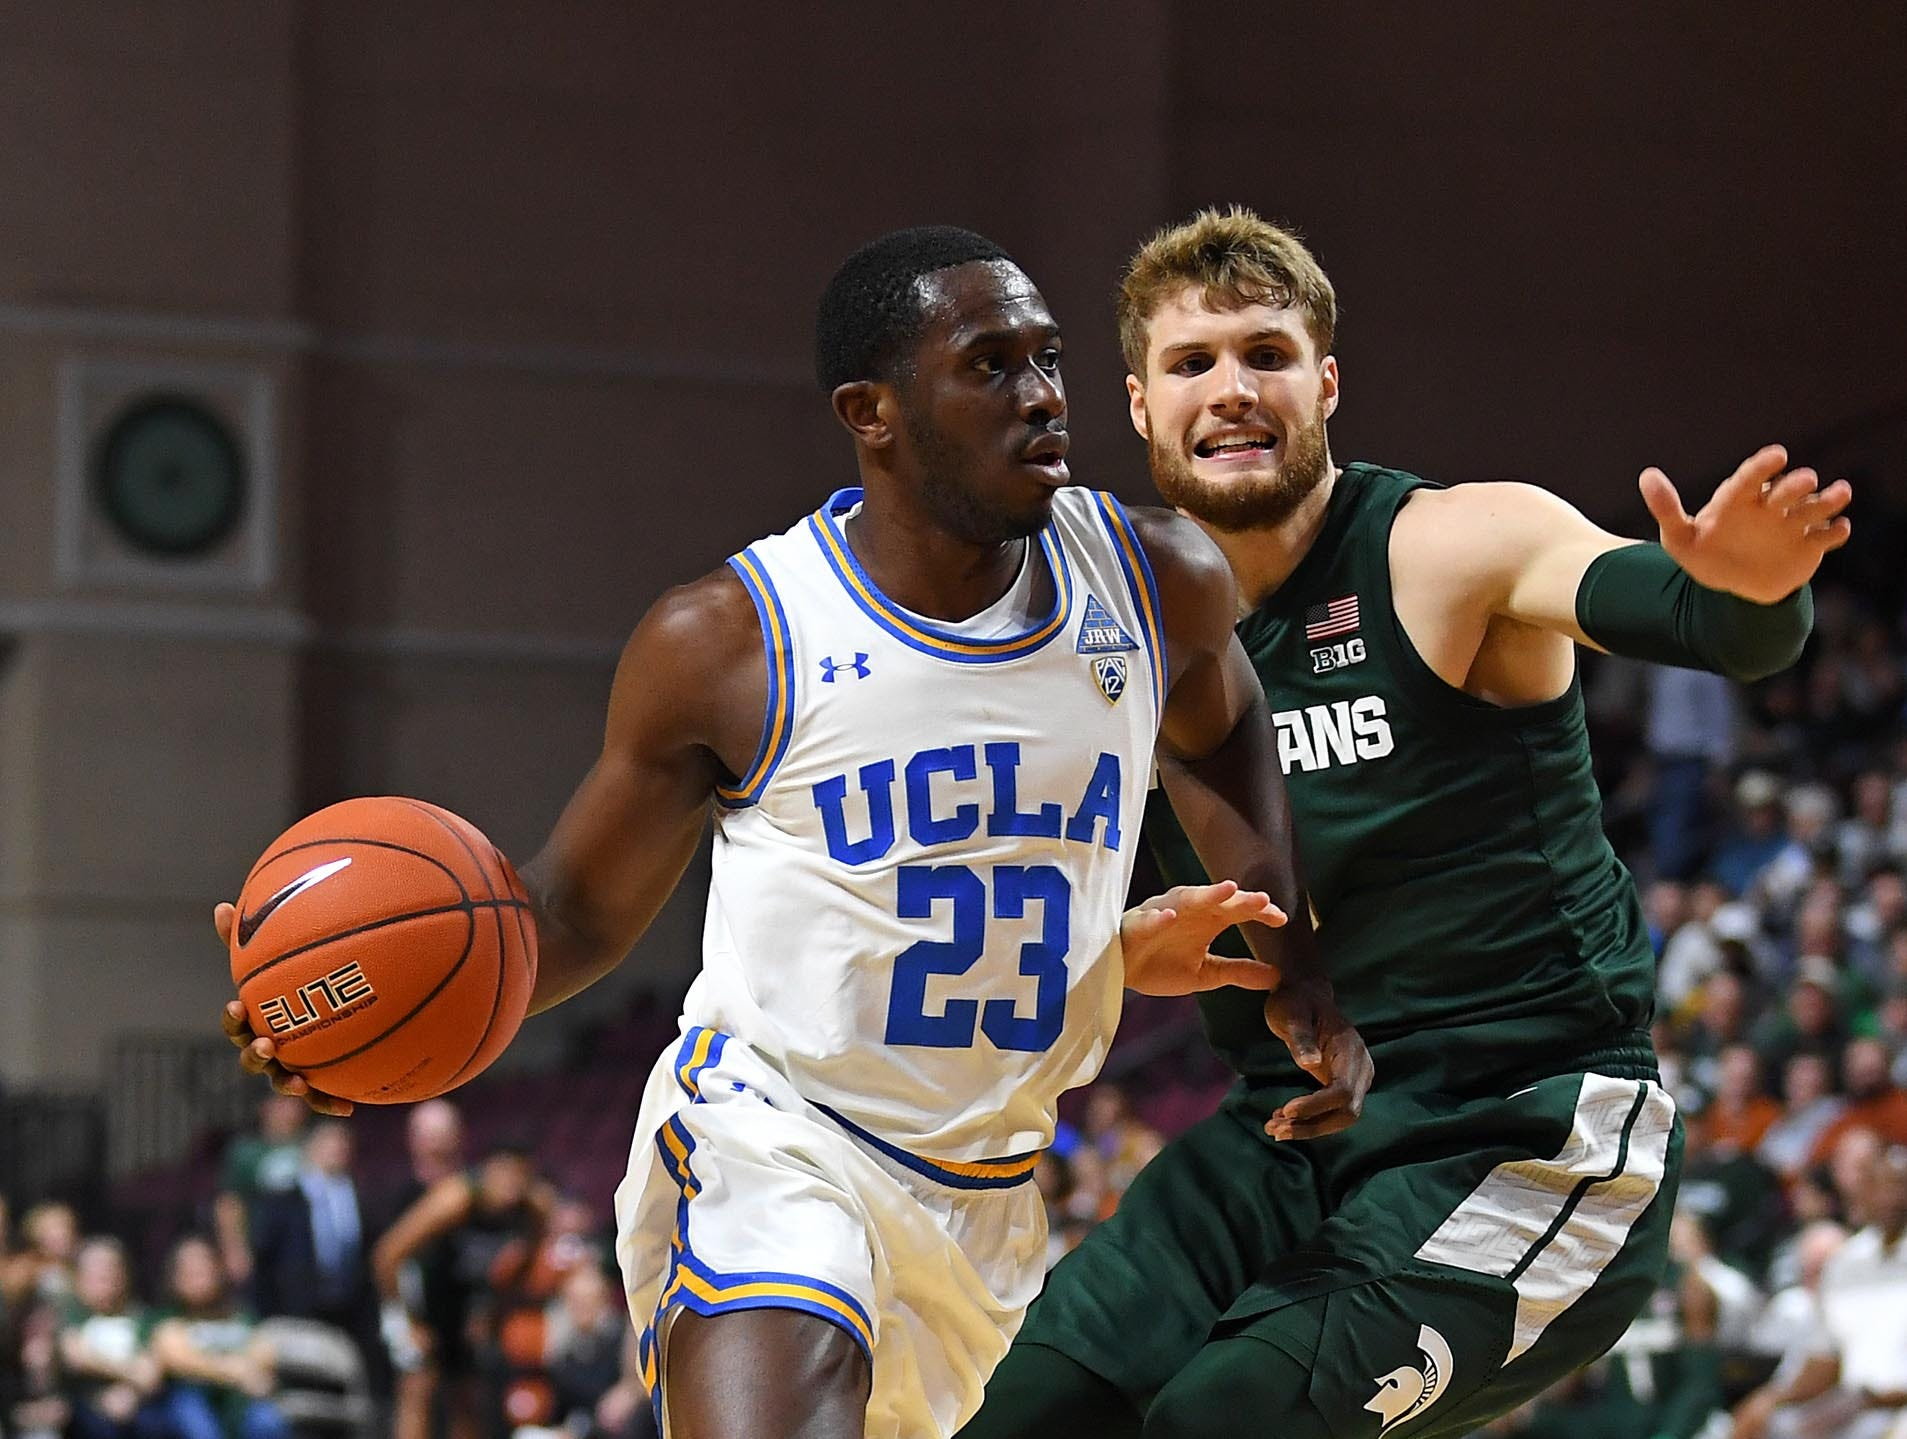 Nov 22, 2018; Las Vegas, NV, USA; UCLA Bruins guard Prince Ali (23) dribbles against Michigan State Spartans forward Kyle Ahrens (0) during the second half at Orleans Arena. Mandatory Credit: Stephen R. Sylvanie-USA TODAY Sports